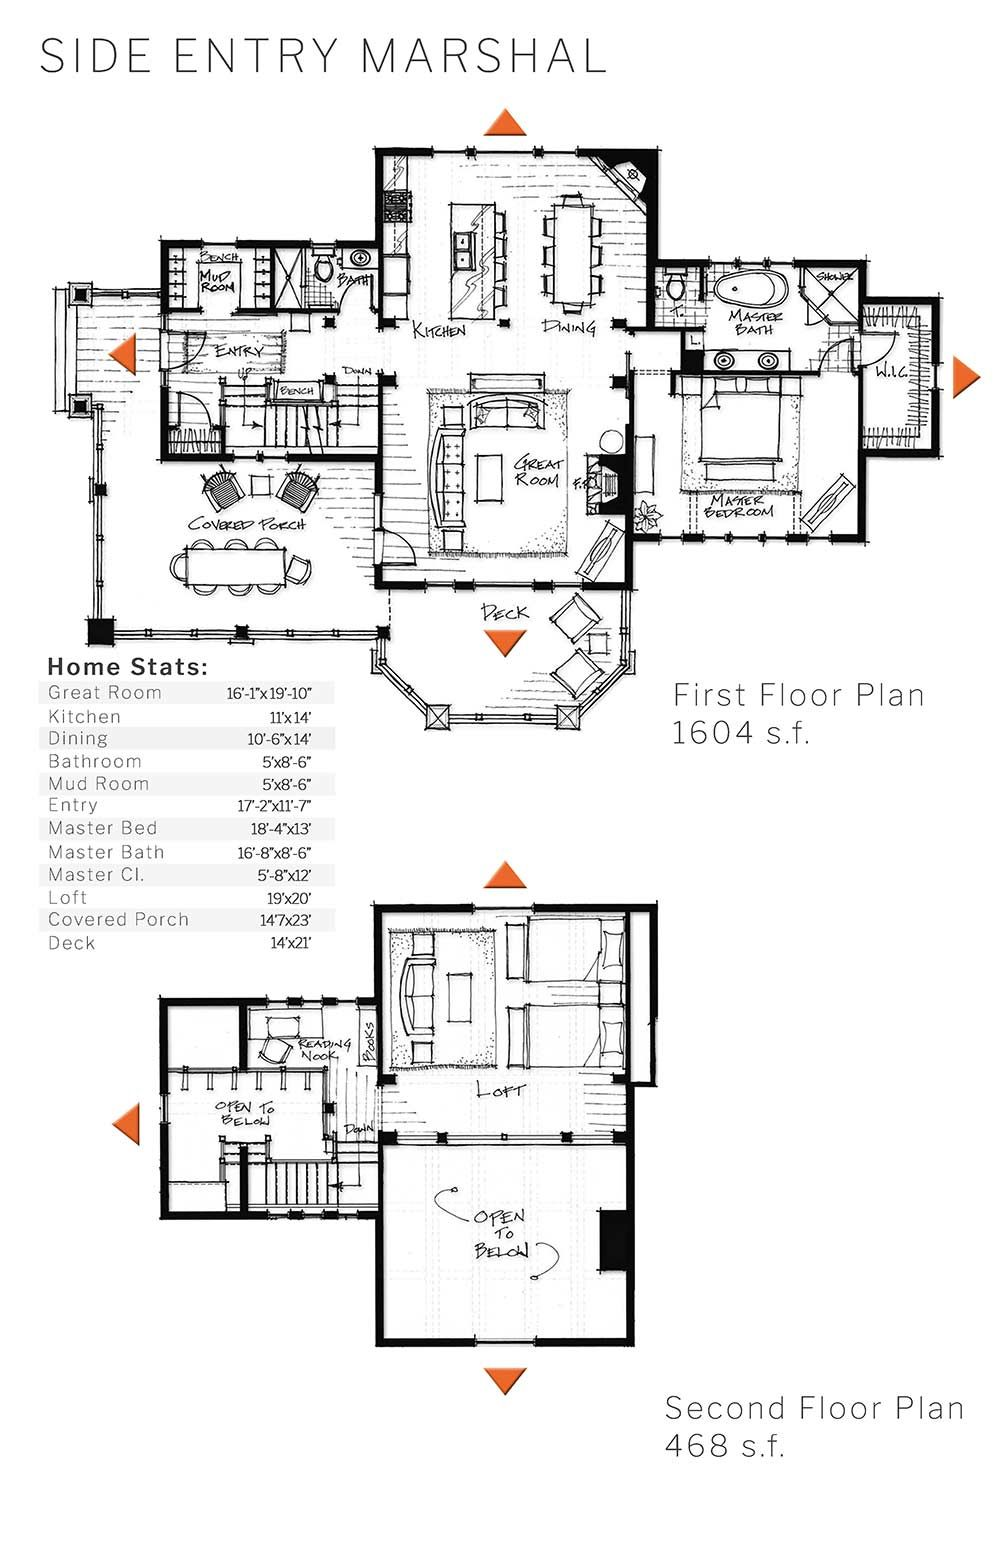 Timber Home Plan For Our Side Entry Marshal Design House Plans Timber Frame Homes Floor Plans